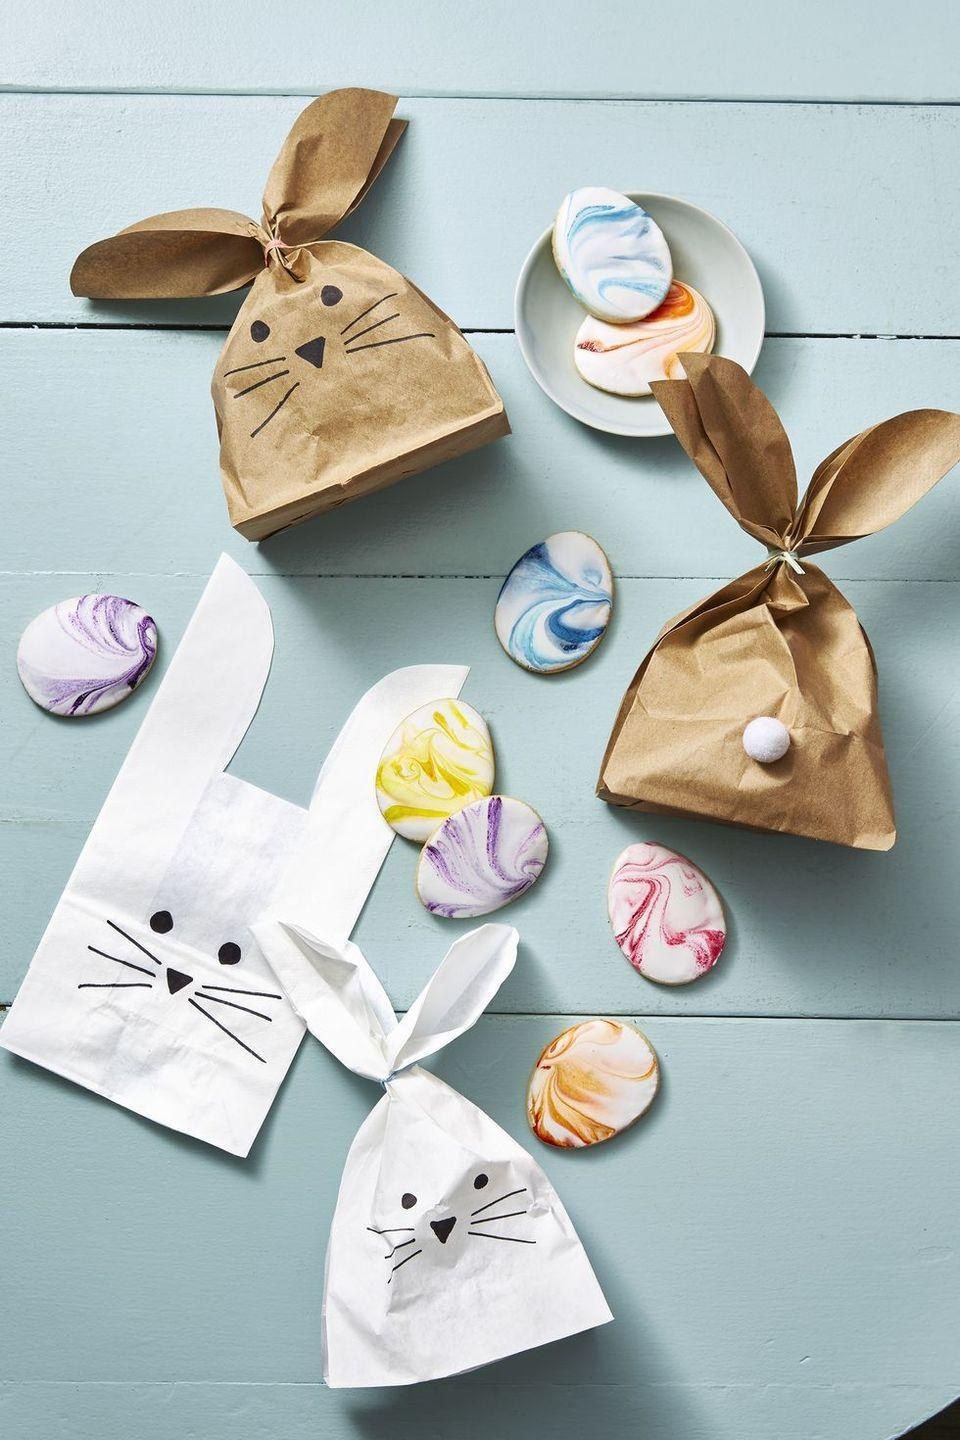 <p>If you're short on storage space, go with something that you can fold up or recycle as soon as the holiday wraps. Cut paper bags to make bunny-ear shapes, then draw on a bunny face with a black marker and finish it off with a pom-pom tail. Fill it with all of their chocolates, candies, and other holiday treats as you would a normal basket! </p>